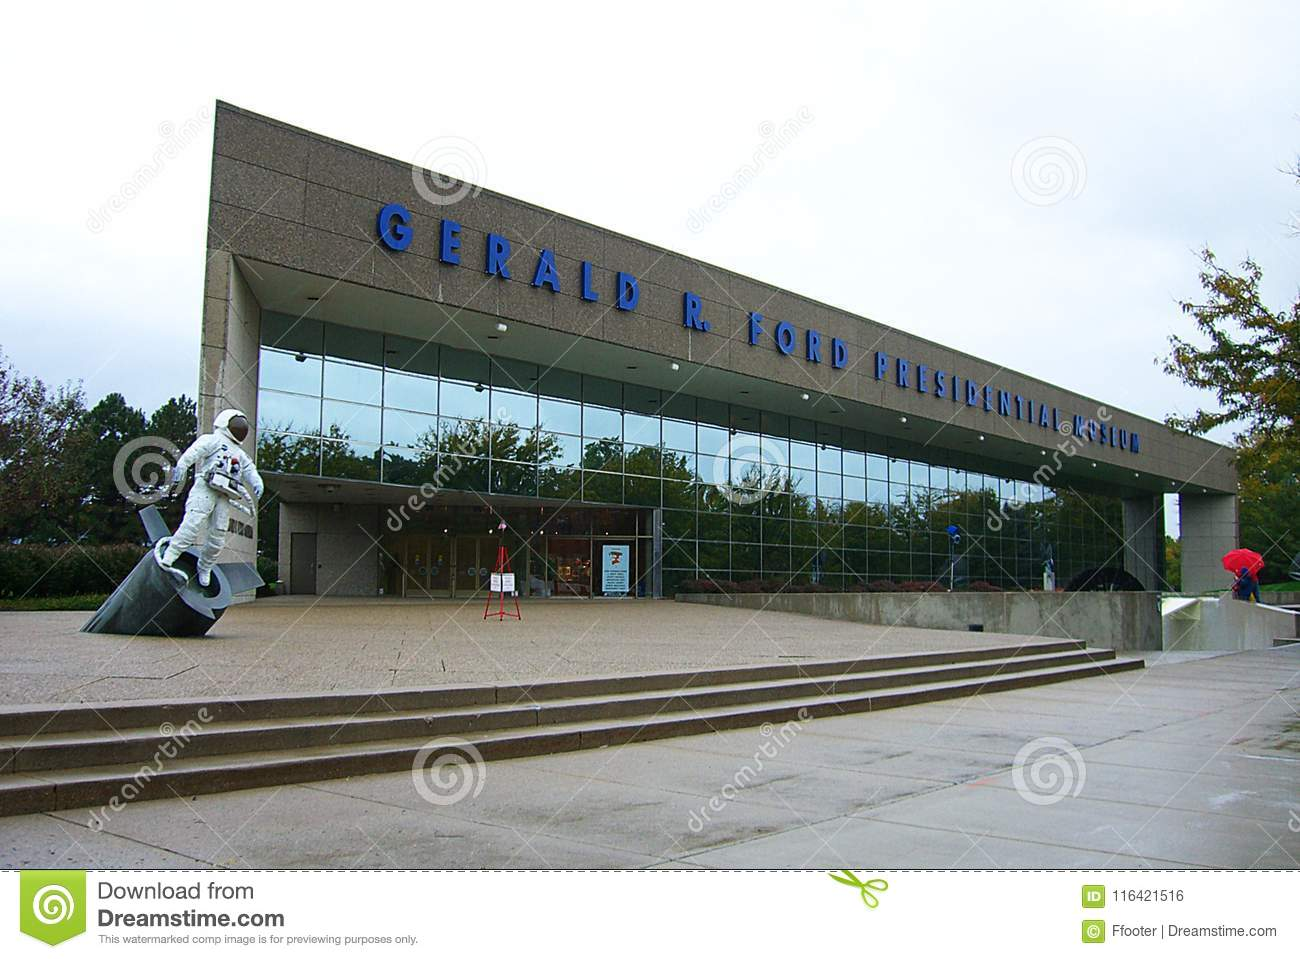 Grand Rapids - Gerald Ford Presidential Library